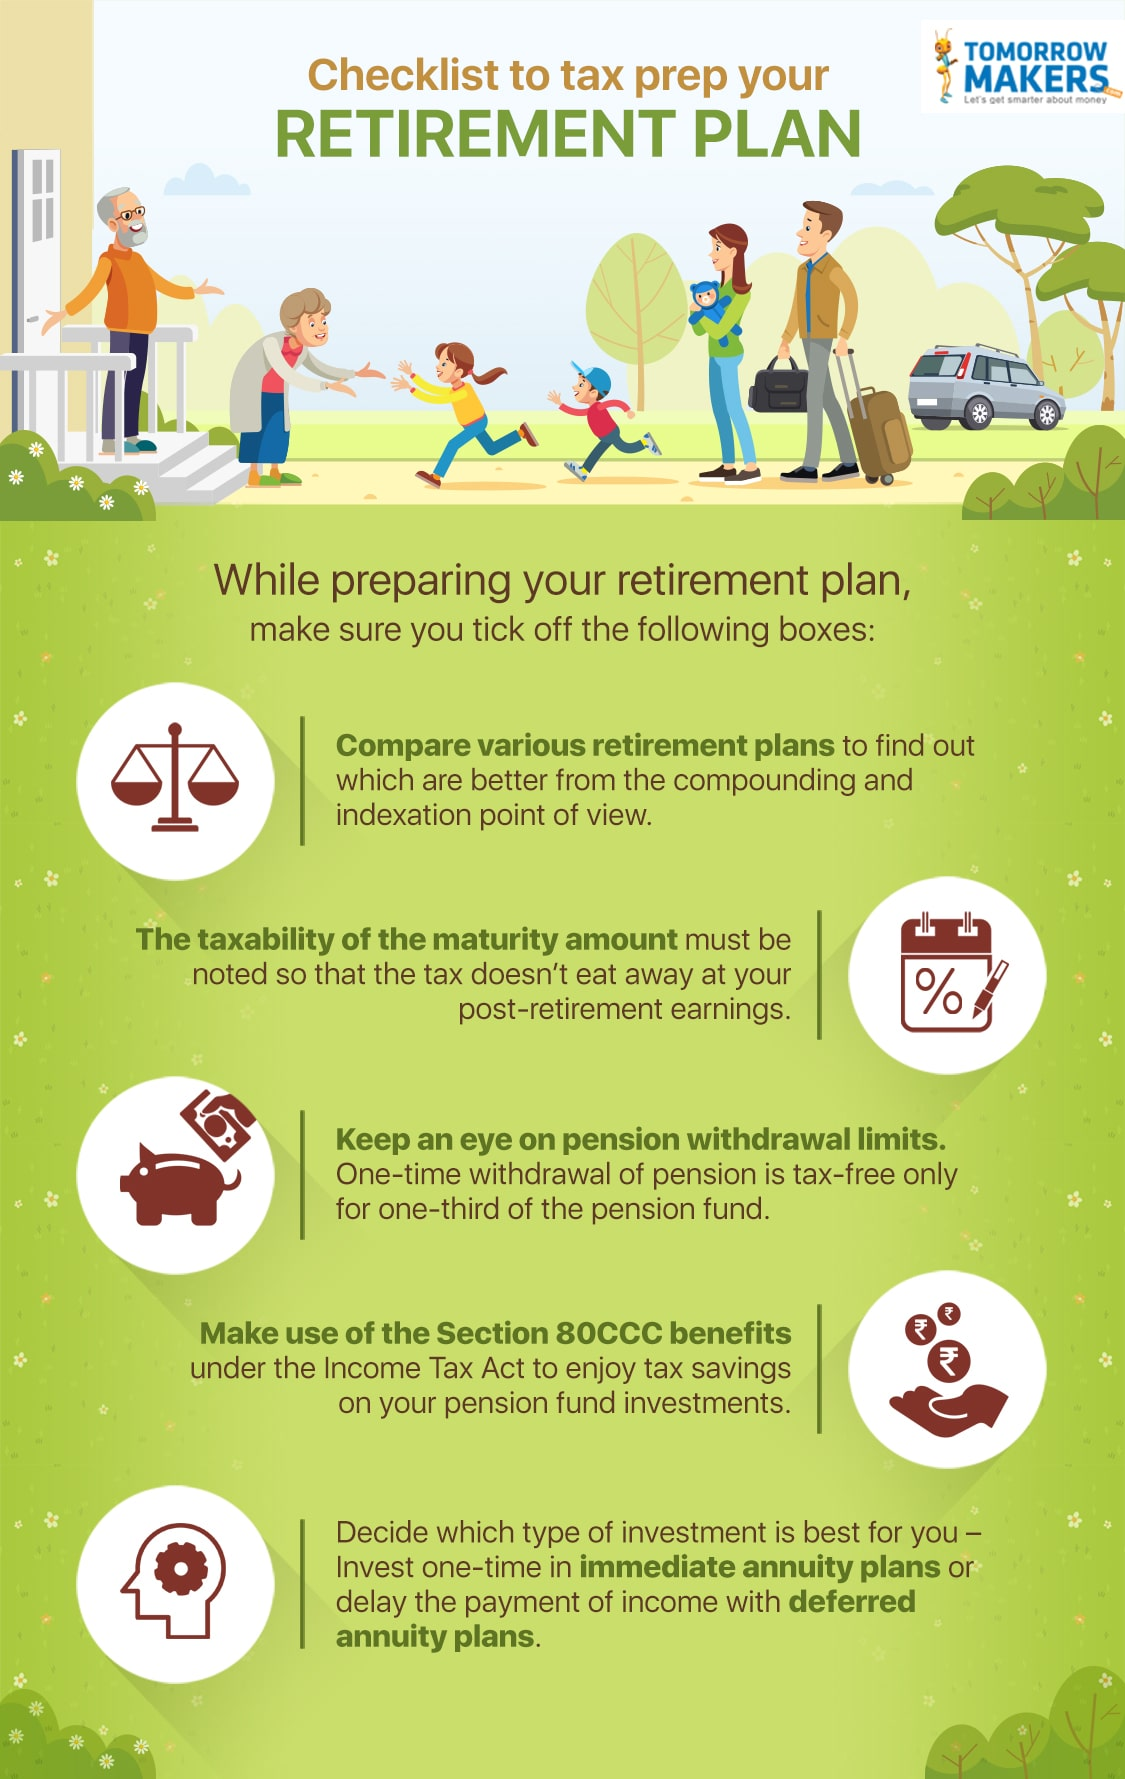 Checklist to tax prep your retirement plan